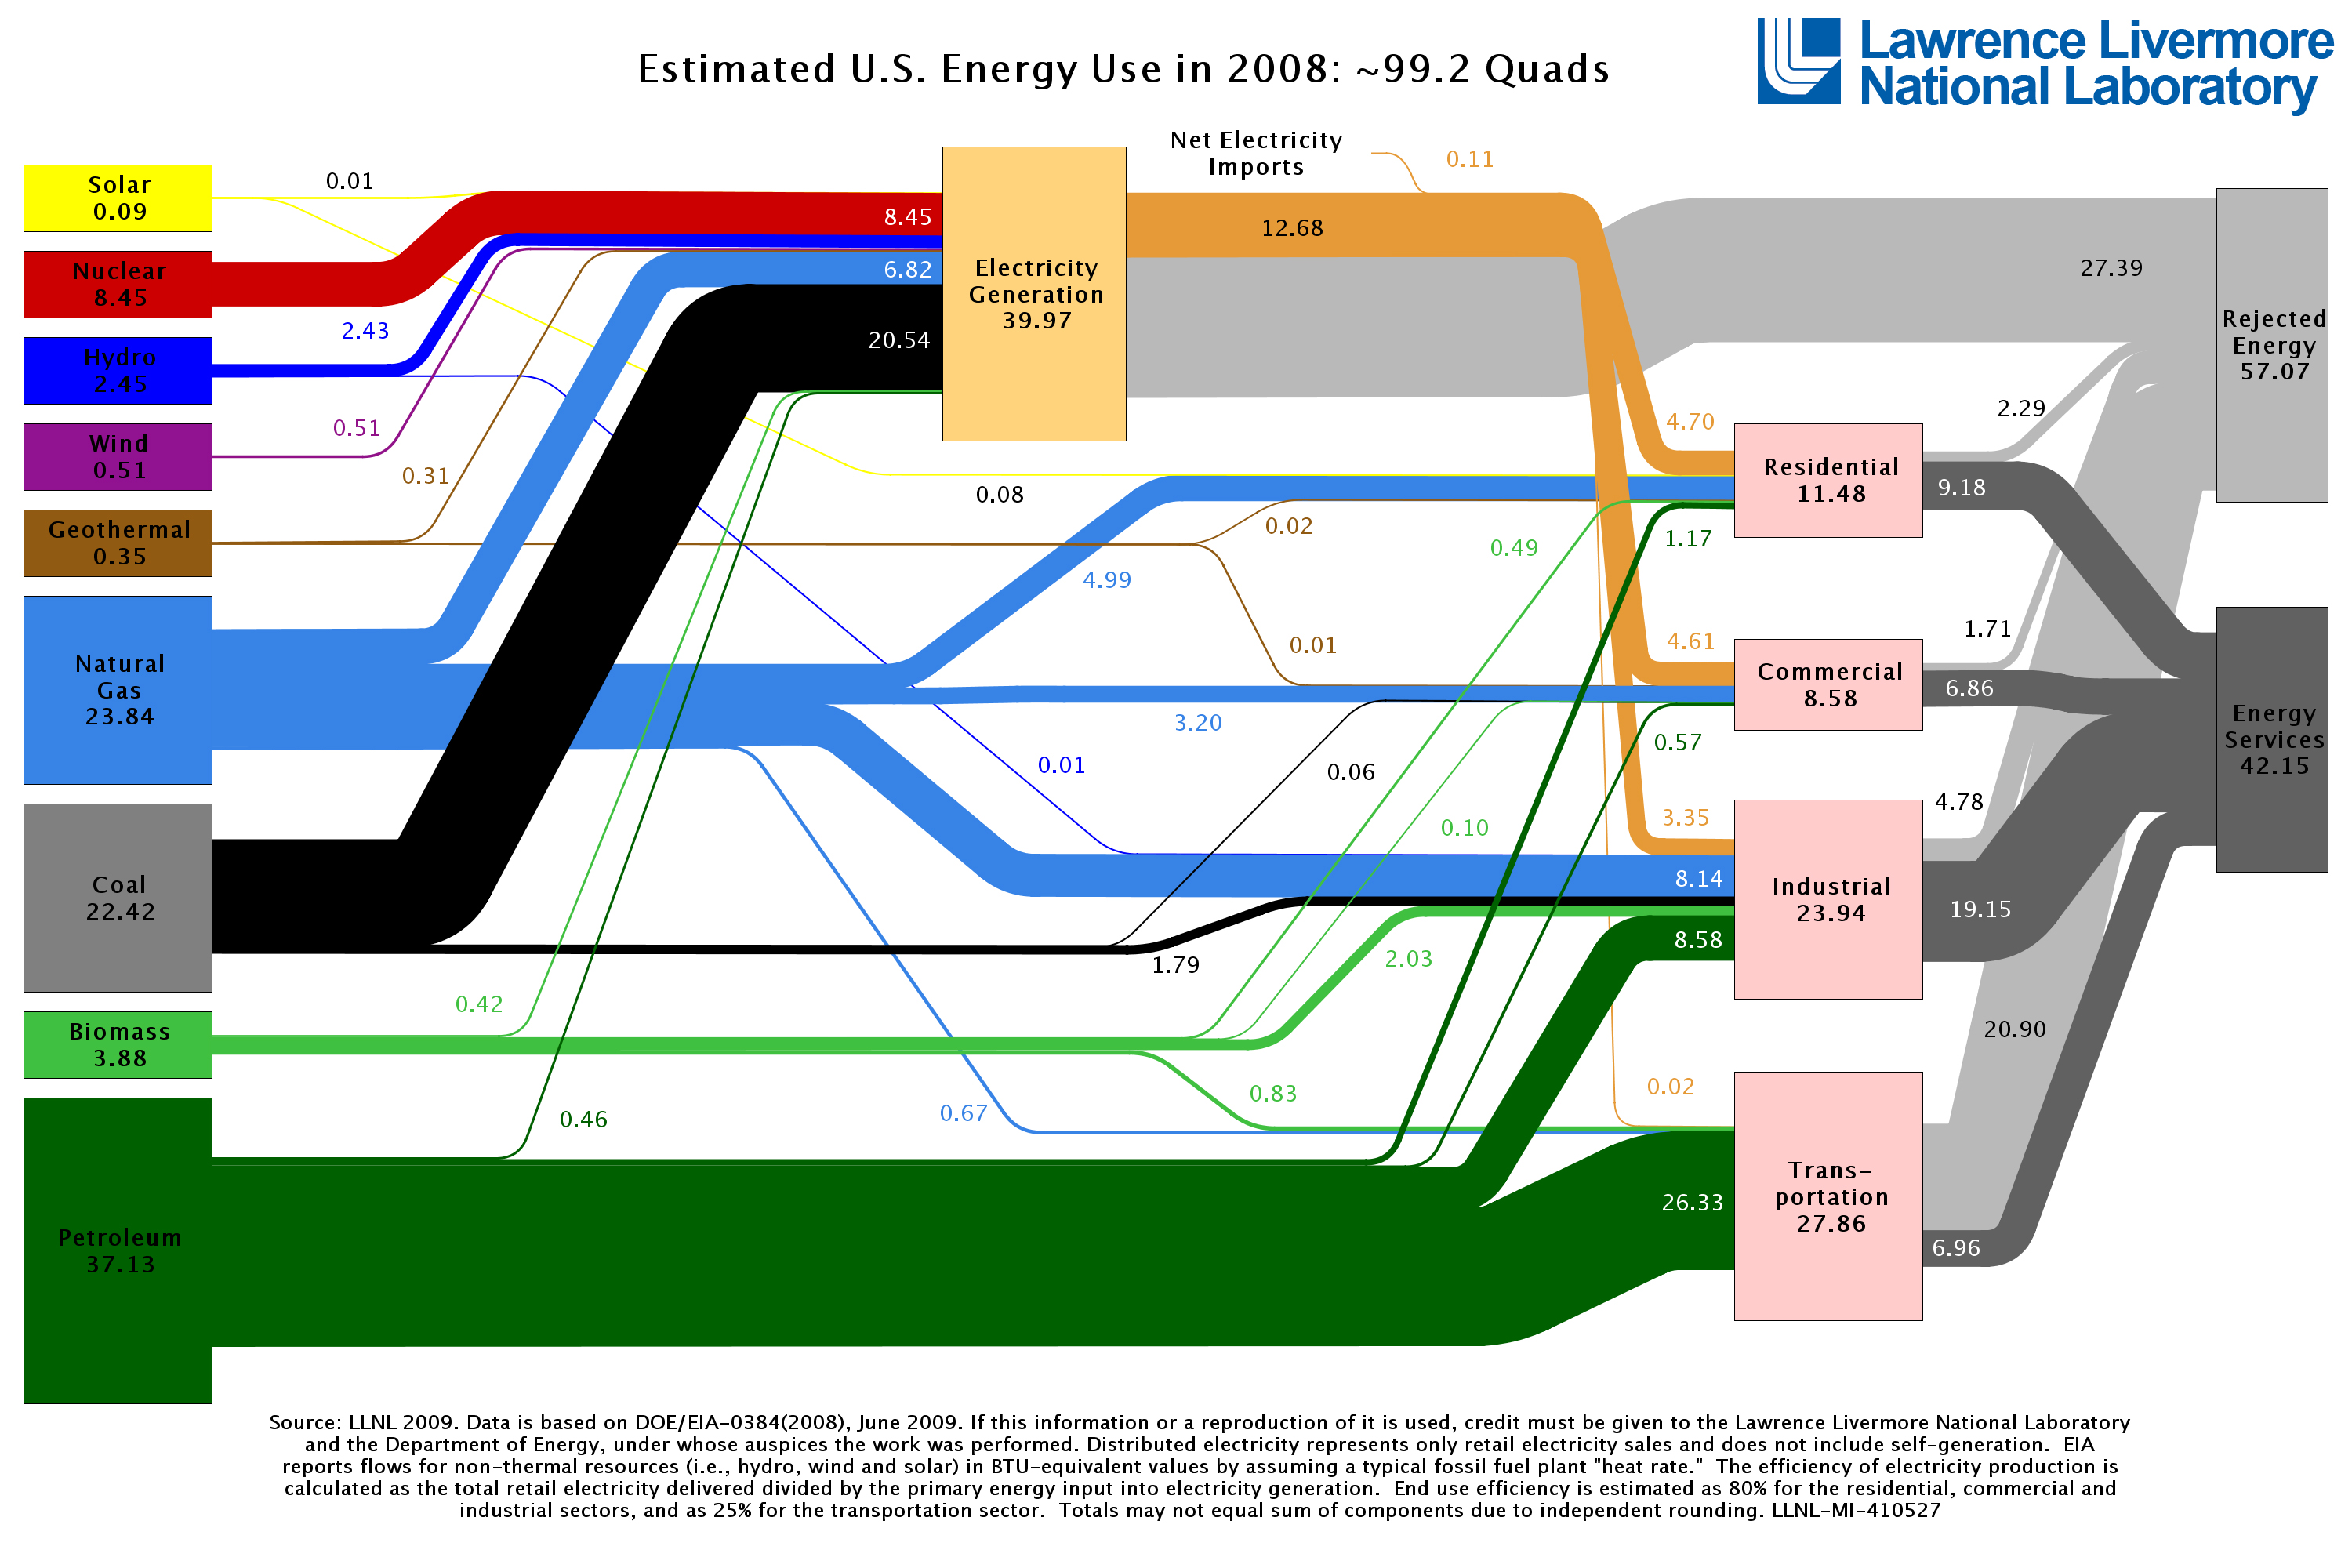 Energy use in the us click to enlarge source lawrence livermore